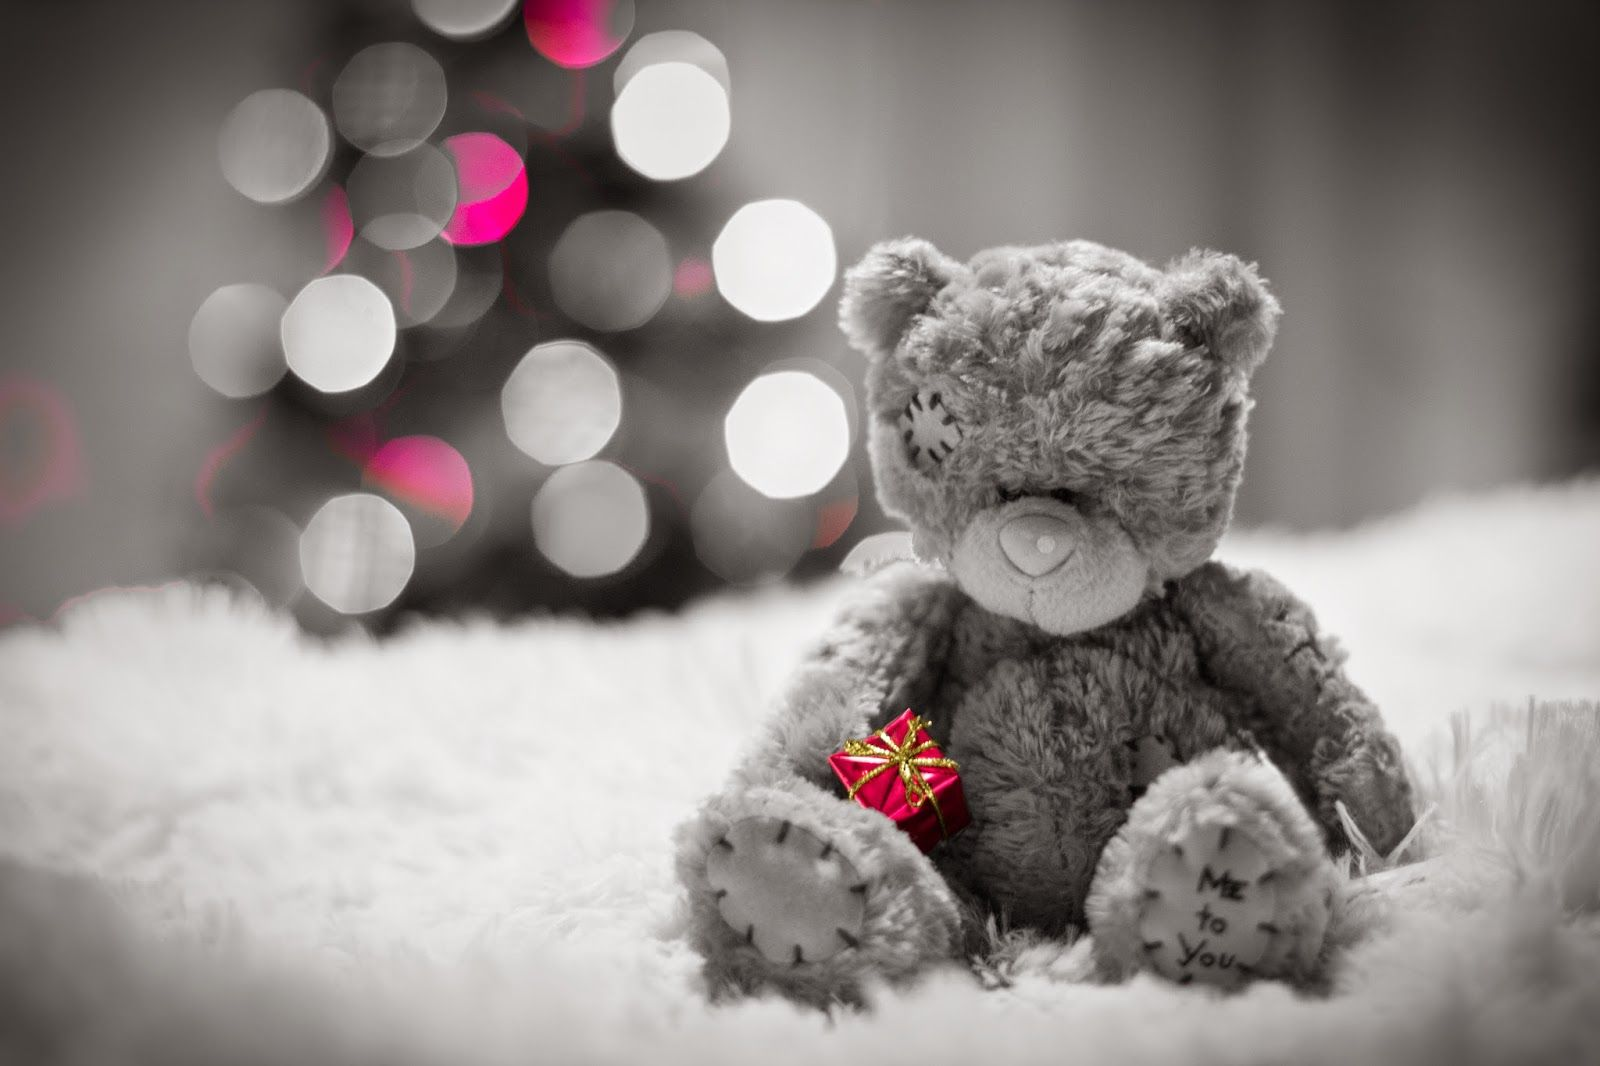 Pin by jake g on hd wallpapers desktop pinterest tatty teddy pictures of sad teddy bear lost lonely feeling after love break up altavistaventures Image collections